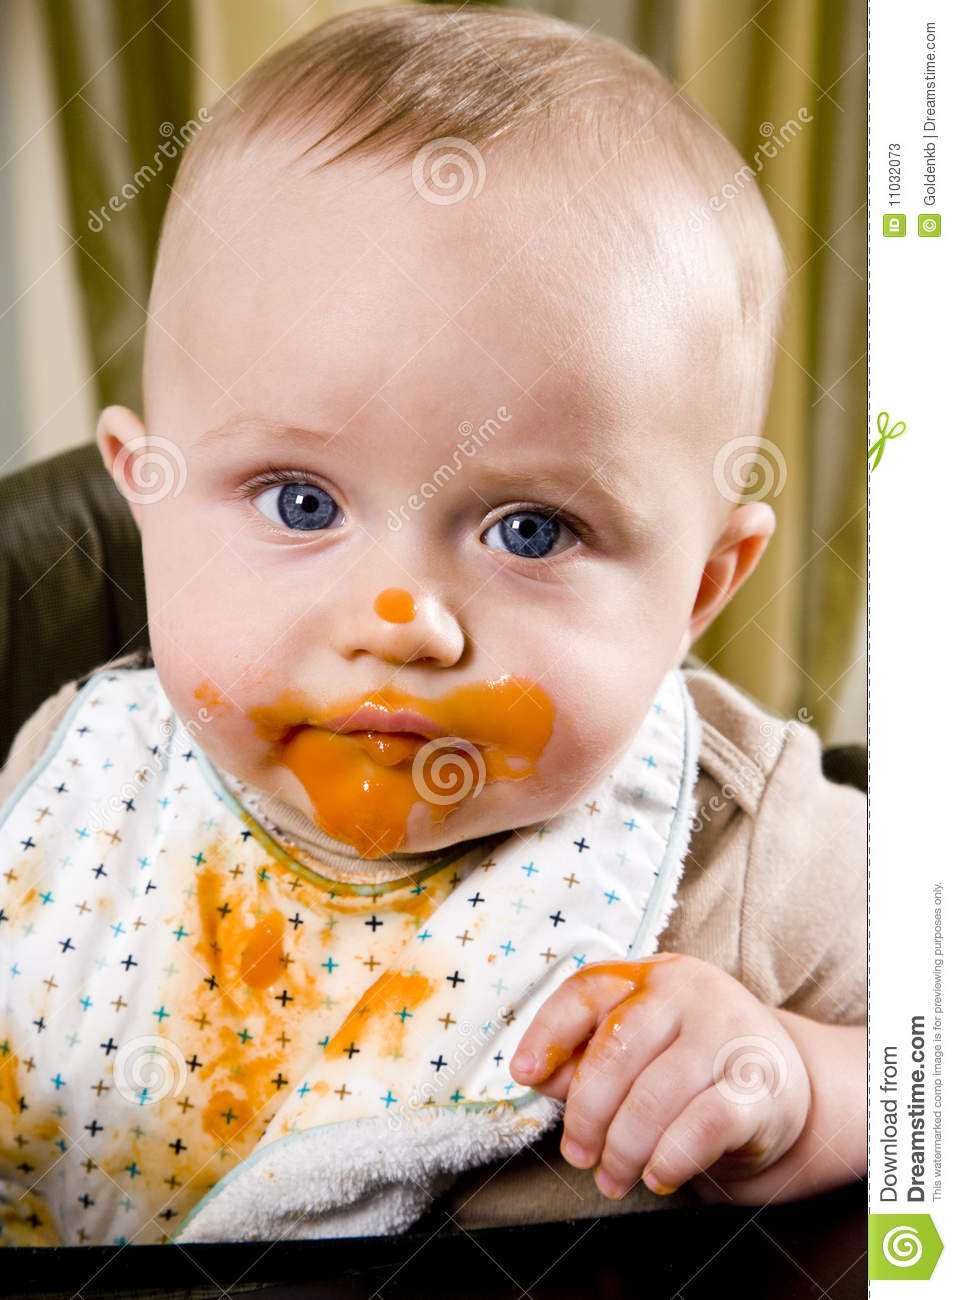 Messy Baby Wearing Bib After Eating Solid Food Stock Photos - Image ...